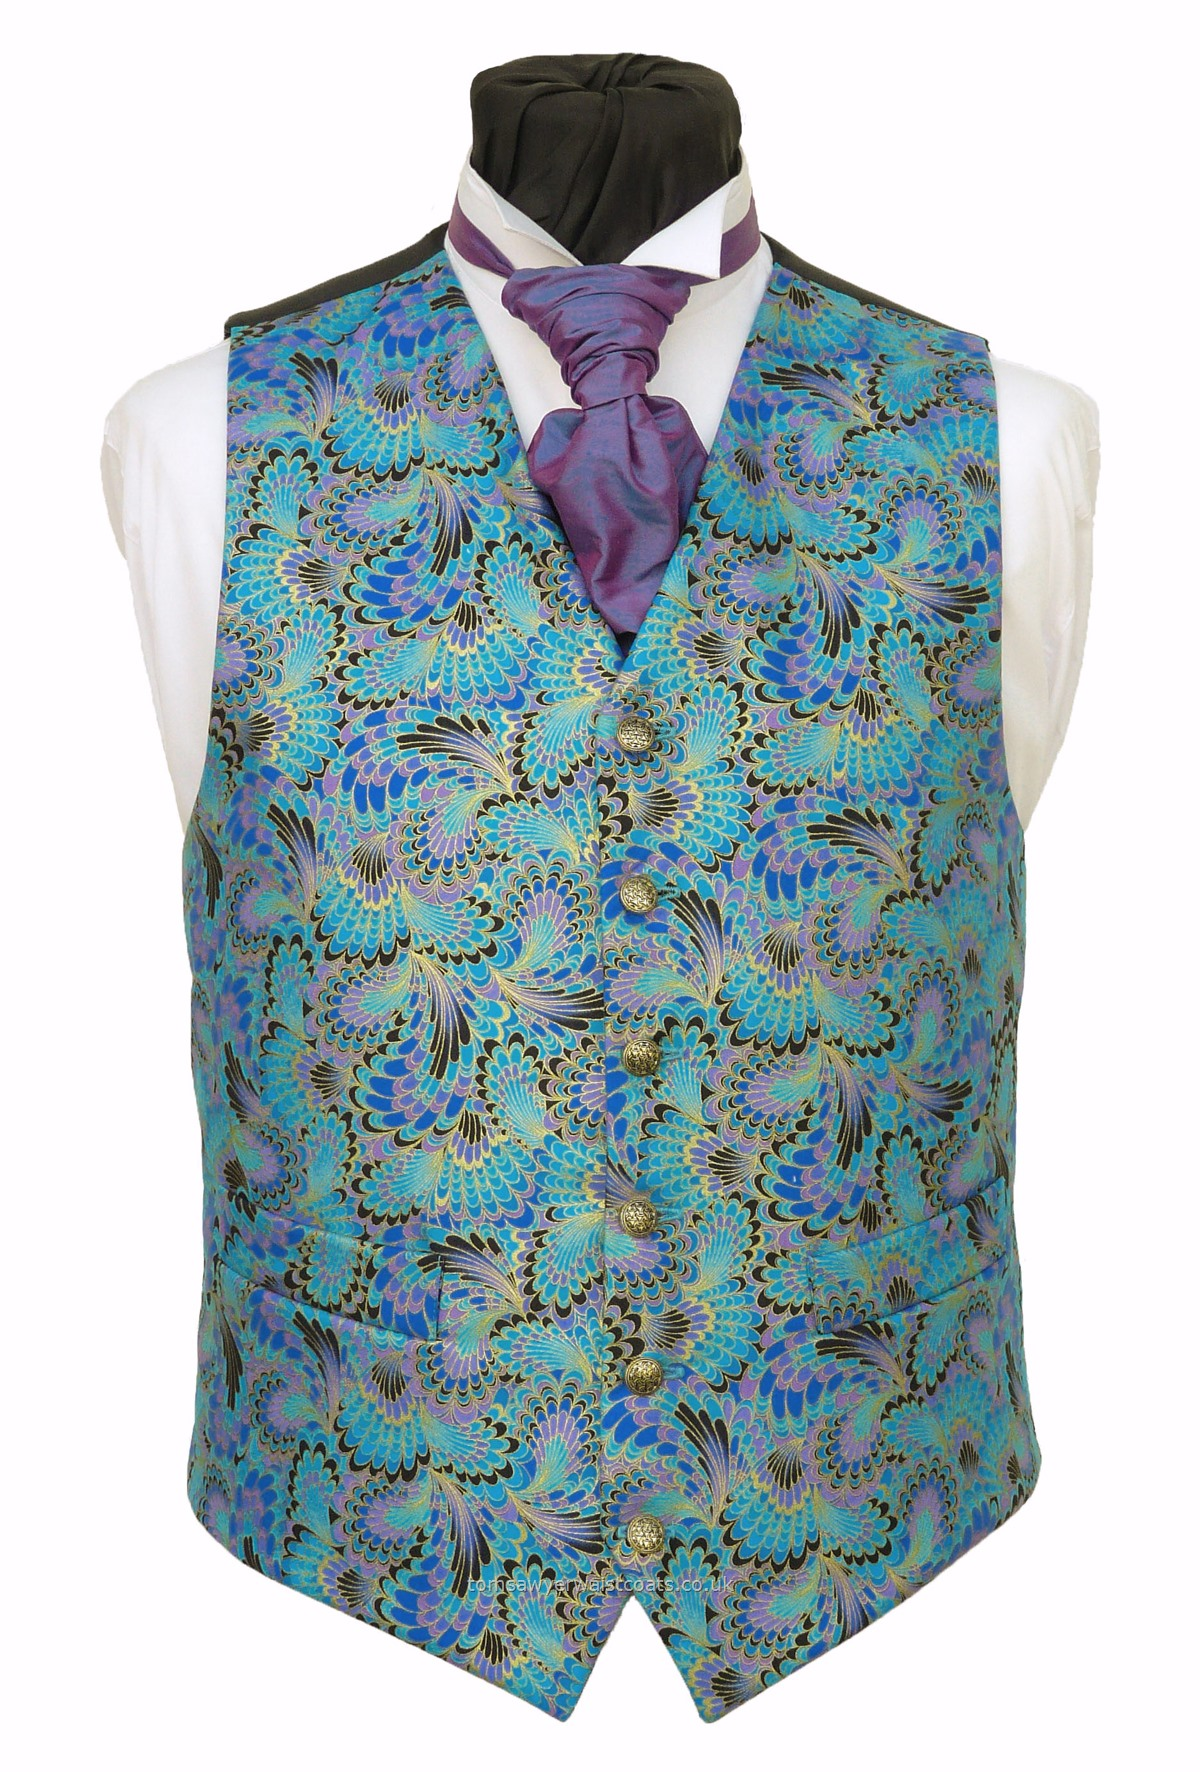 Fun Waistcoats : More Fun Waistcoats : Feathers And Wings - Shades Of Turquoise, Blue & lilac